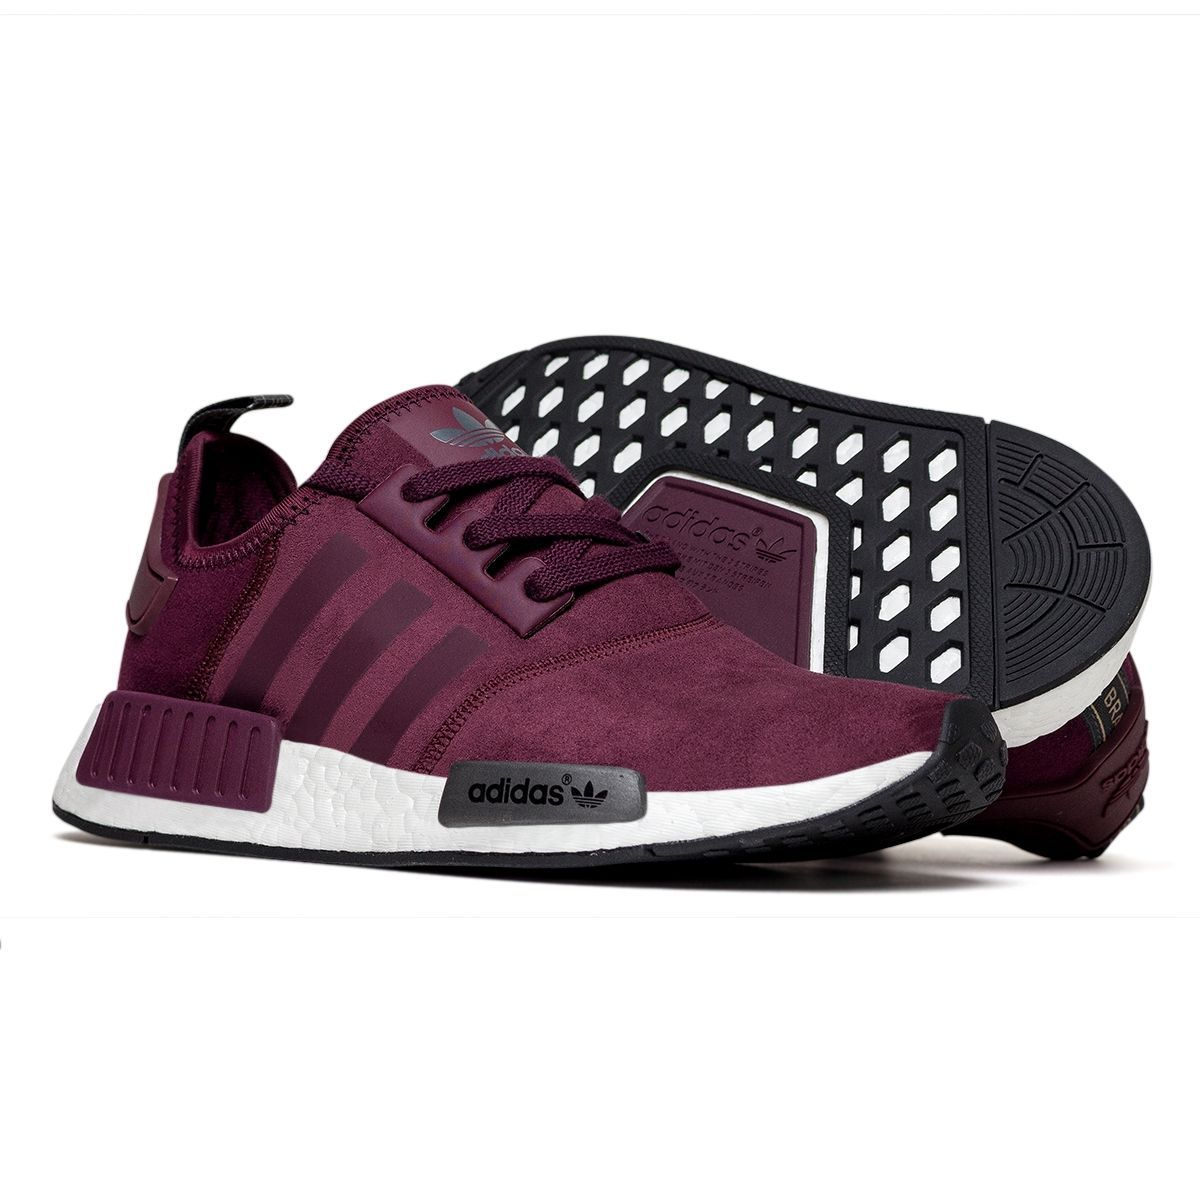 76cab0d10 Adidas NMD Runner Feminino Burgundy | Styling tips | Adidas shoes ...